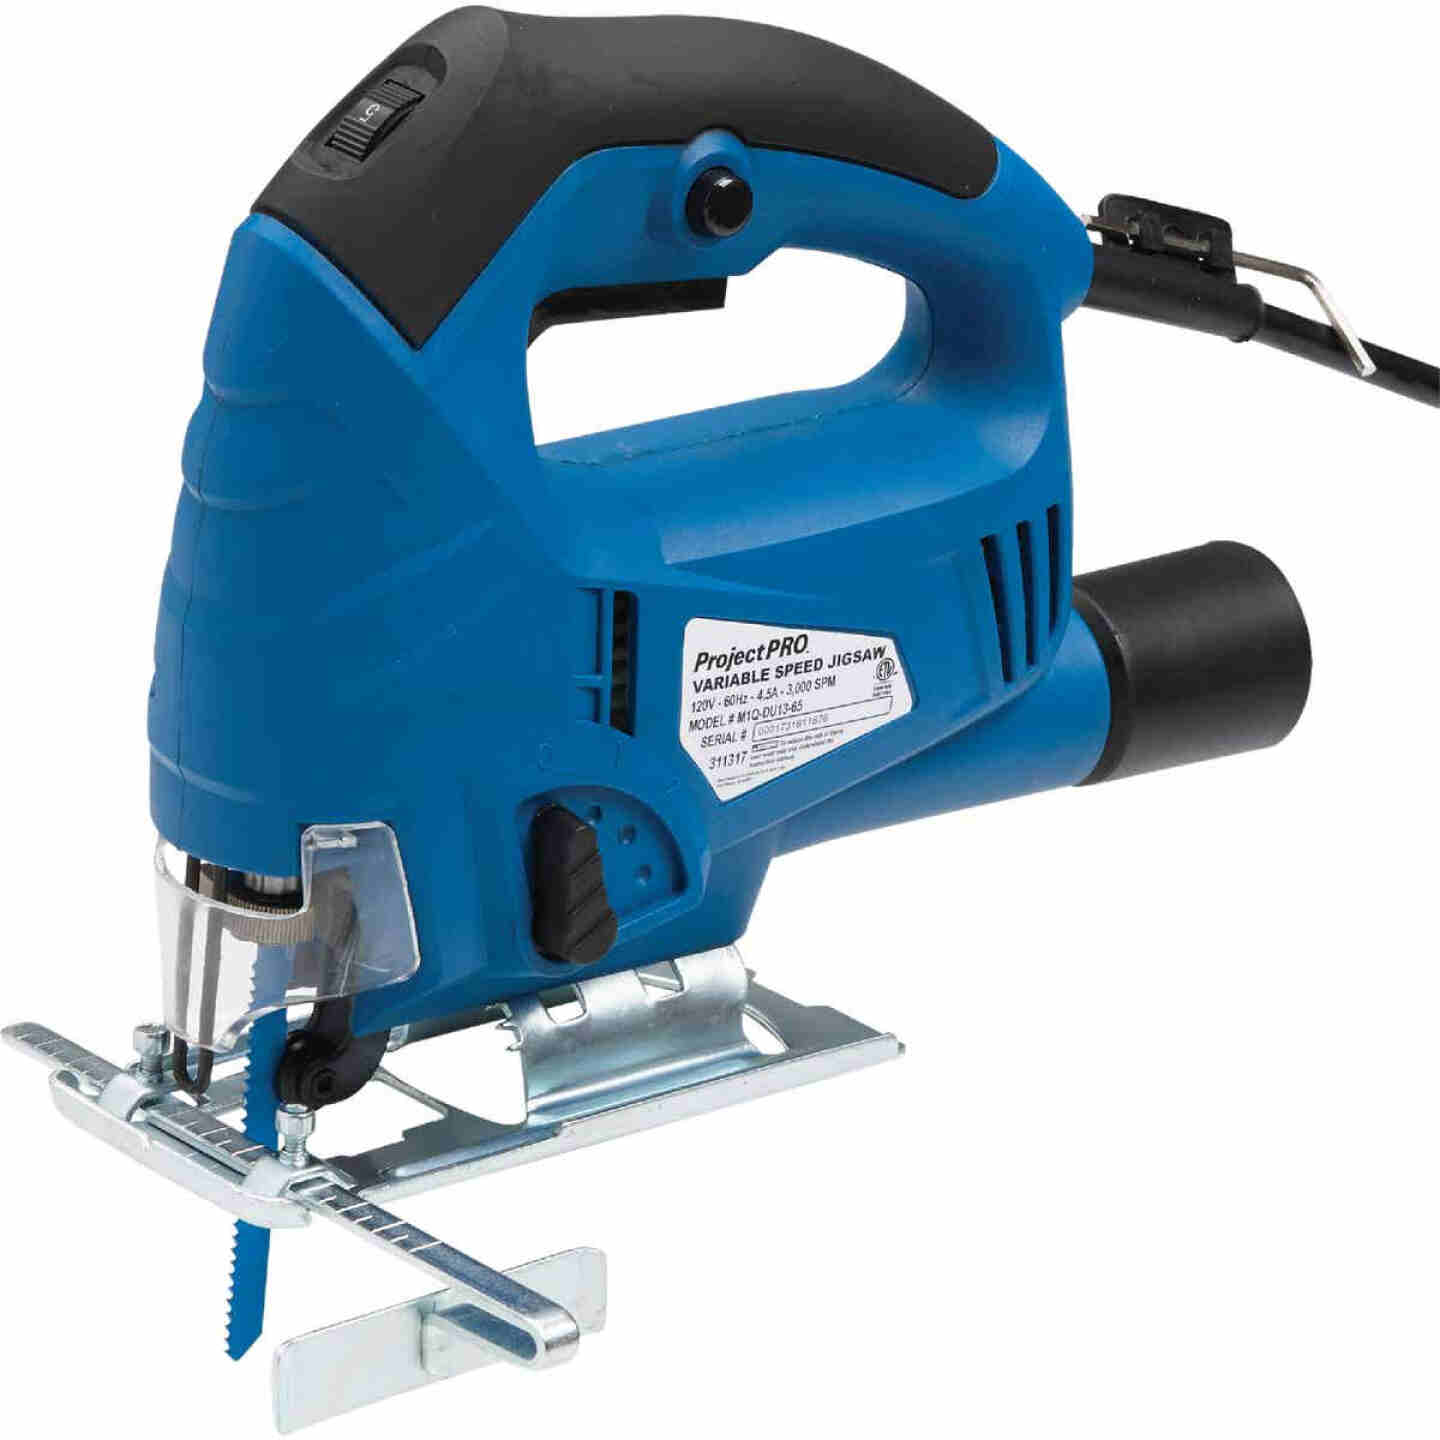 Project Pro 4.5A 0-3000 SPM Speed Jig Saw Image 4